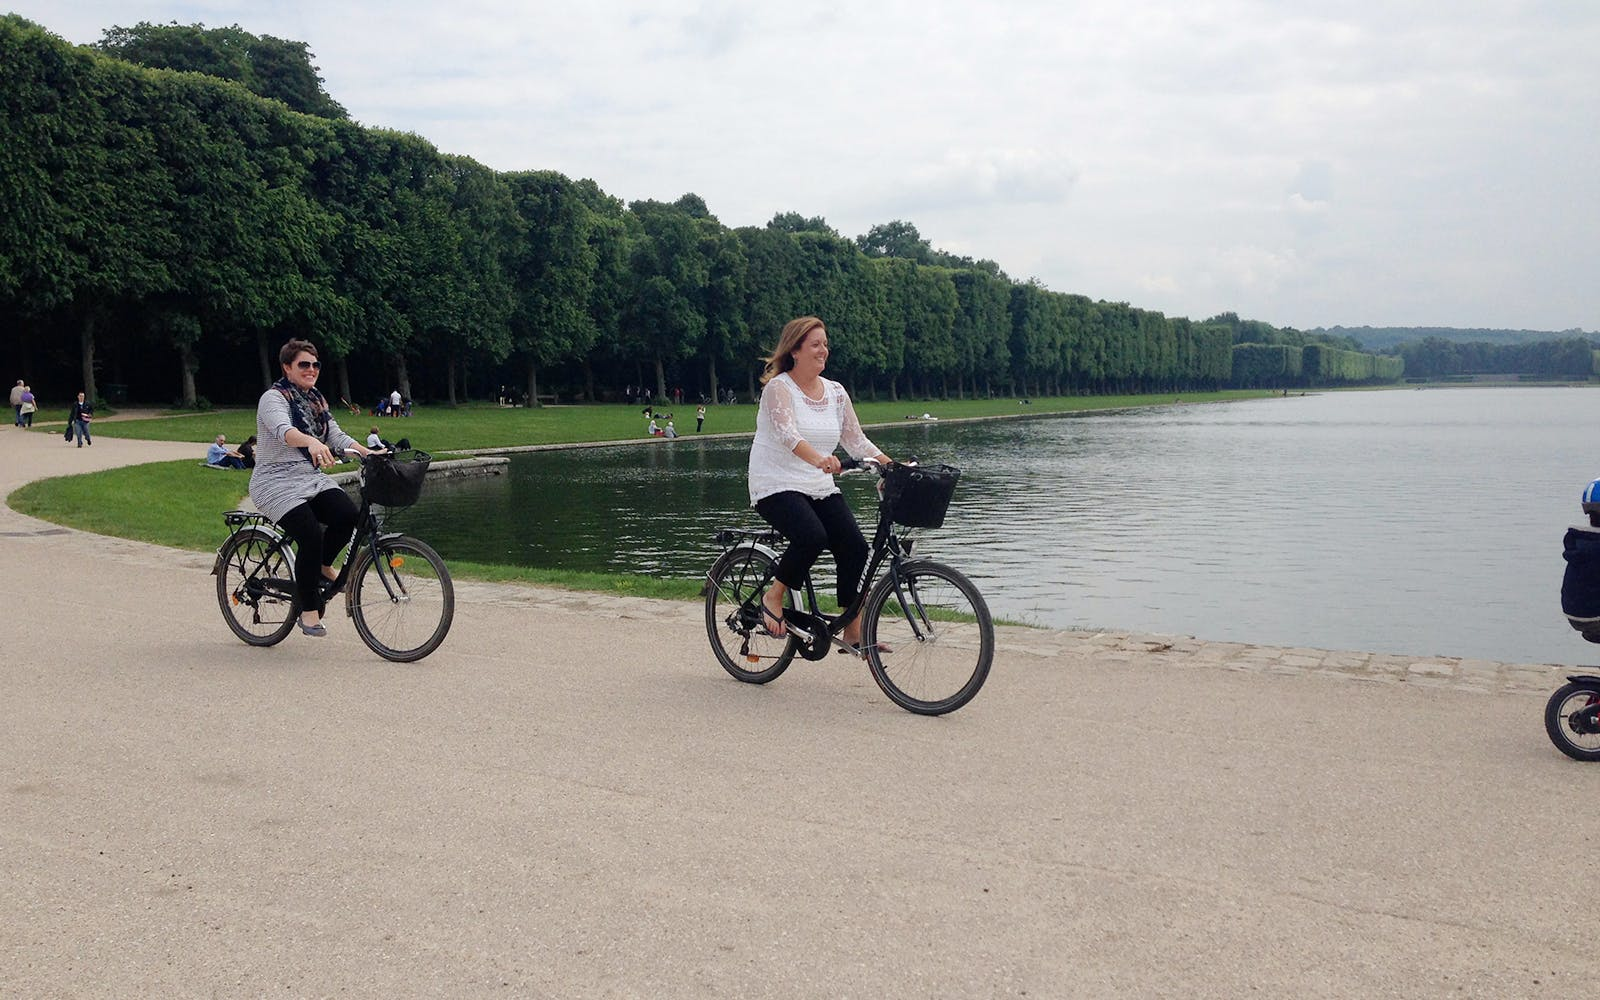 versailles guided bike tour with priority from paris-1